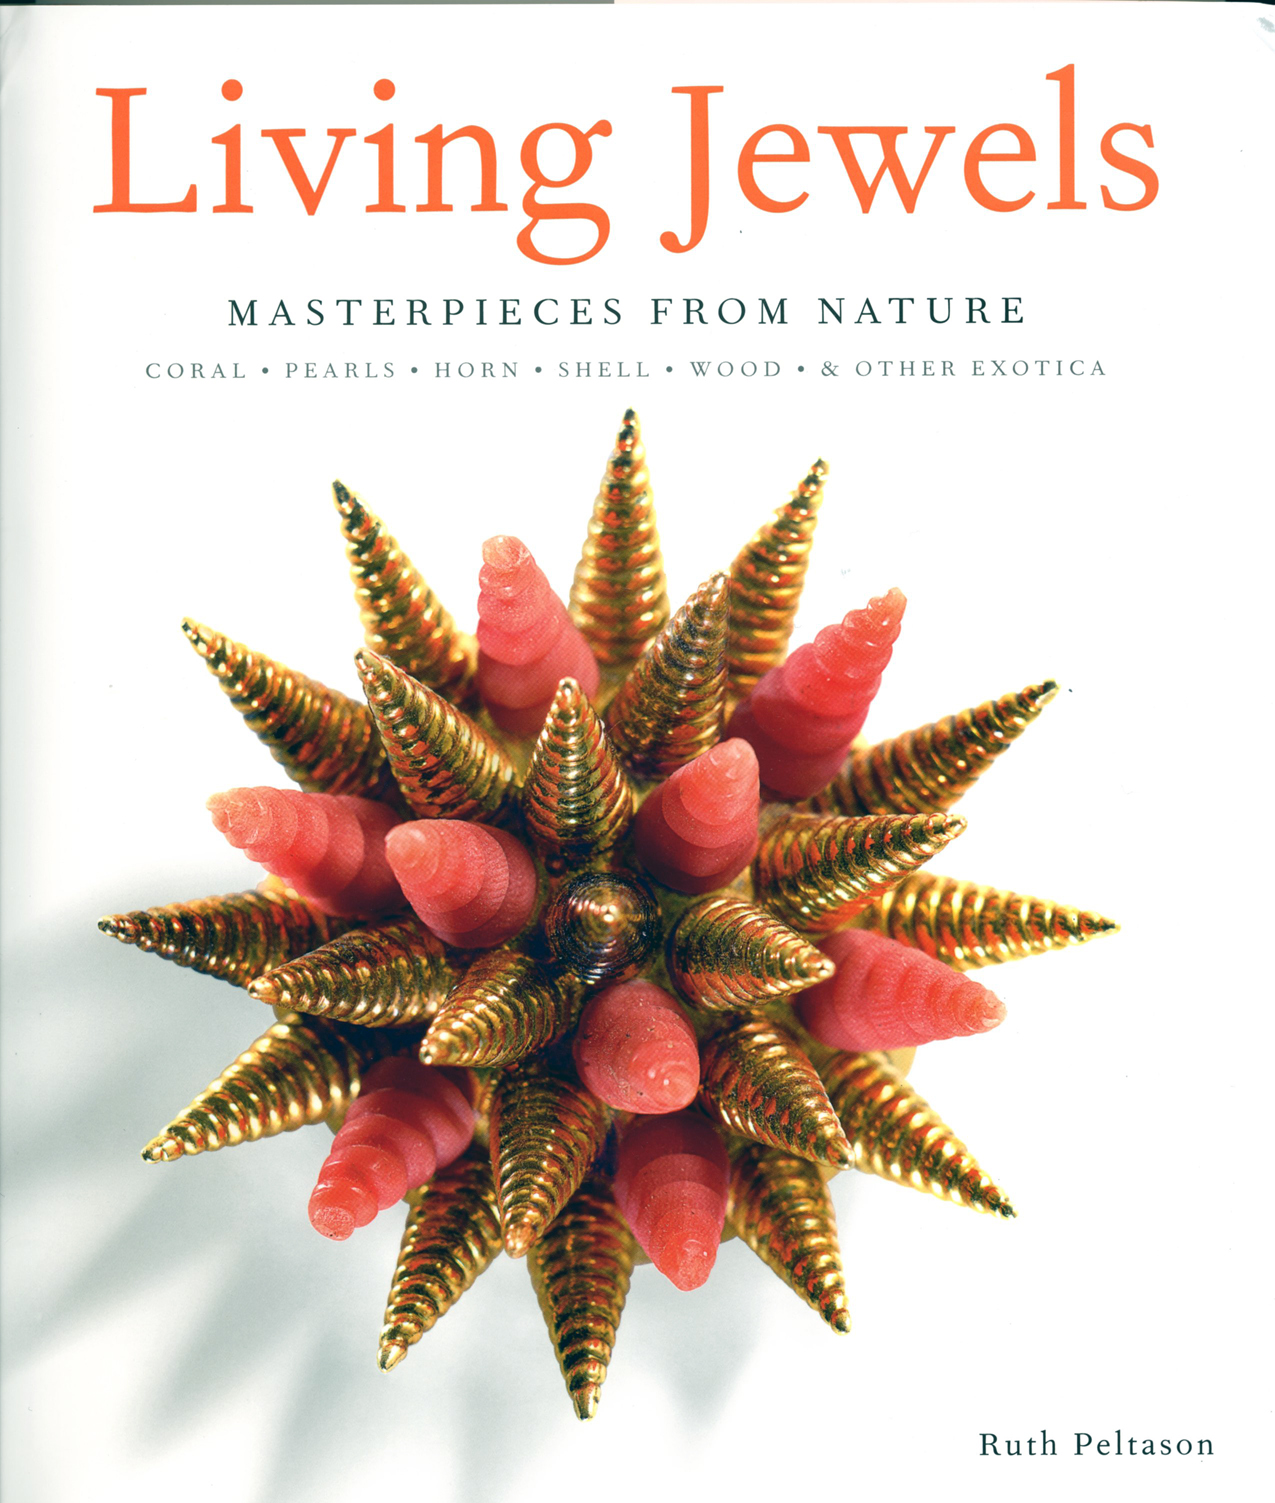 Living Jewels Full Article_Page_1.jpg